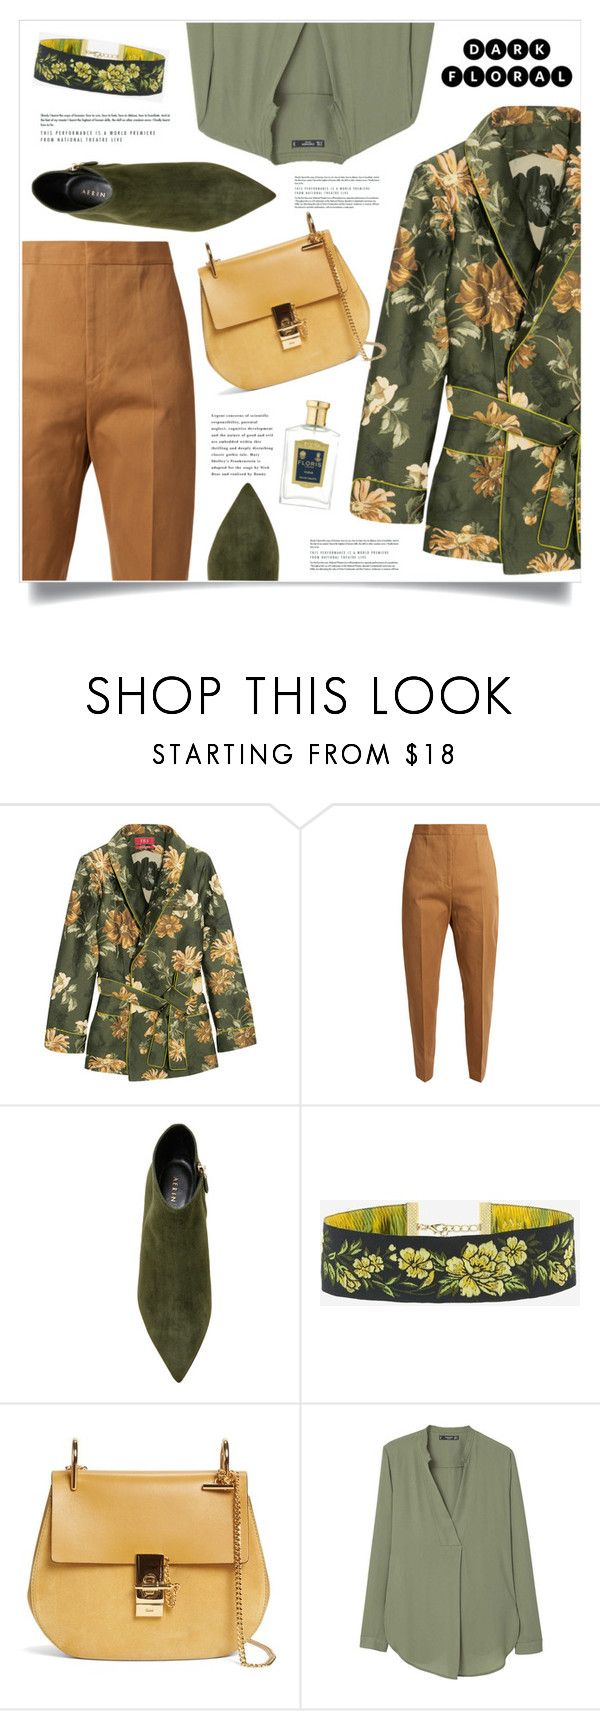 """In Bloom: Dark Florals"" by marina-volaric on Polyvore featuring F.R.S For Restless Sleepers, Jil Sander, AERIN, Chloé, MANGO, Floris and darkflowers"